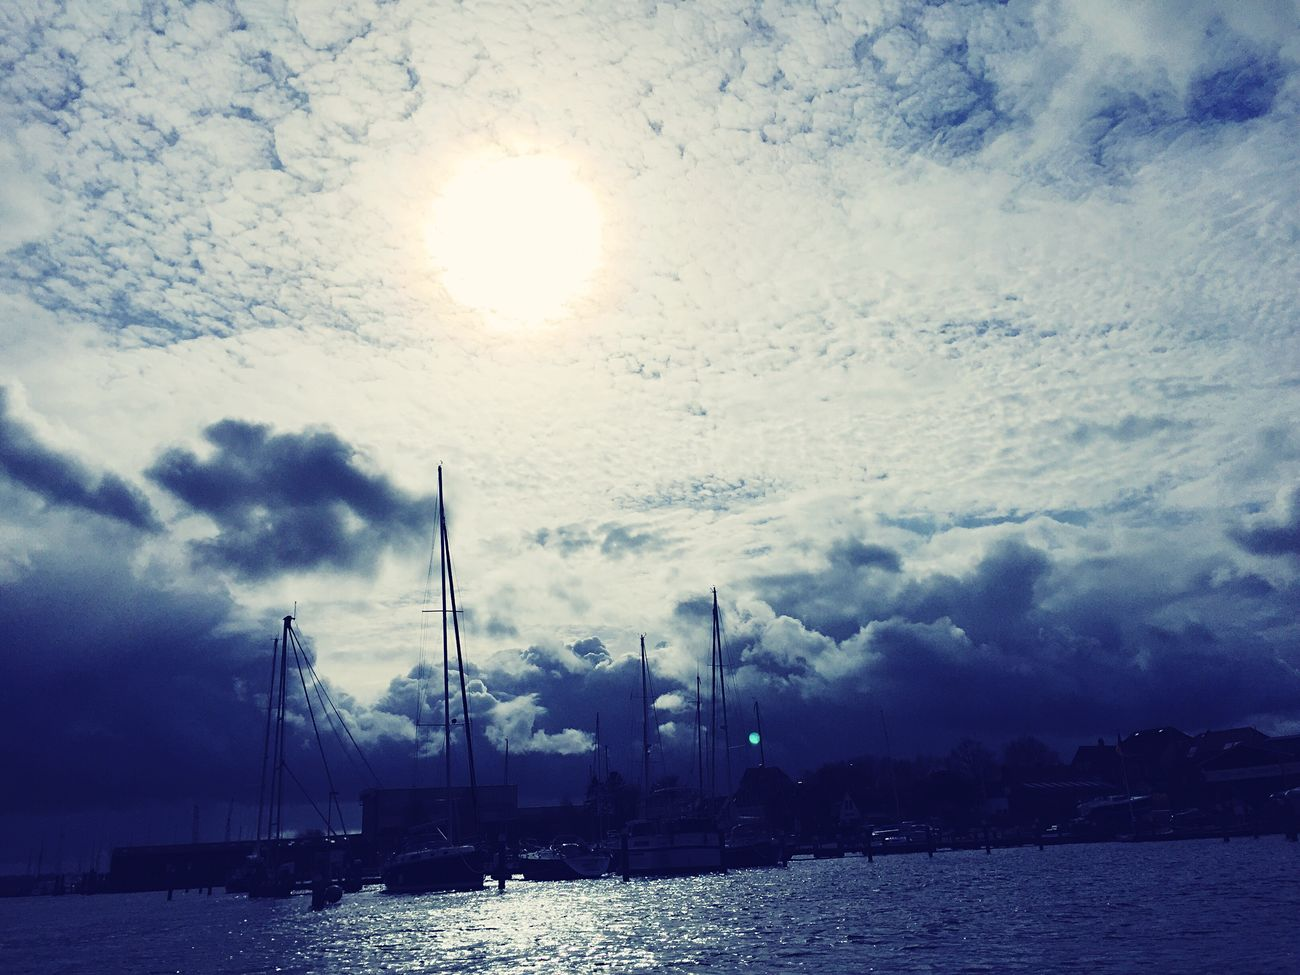 Sun Is hiding behind the clouds! Sunshine ☀ Wasser Beauty In Nature Sky Ships⚓️⛵️🚢 Ship Water Big Clouds No People